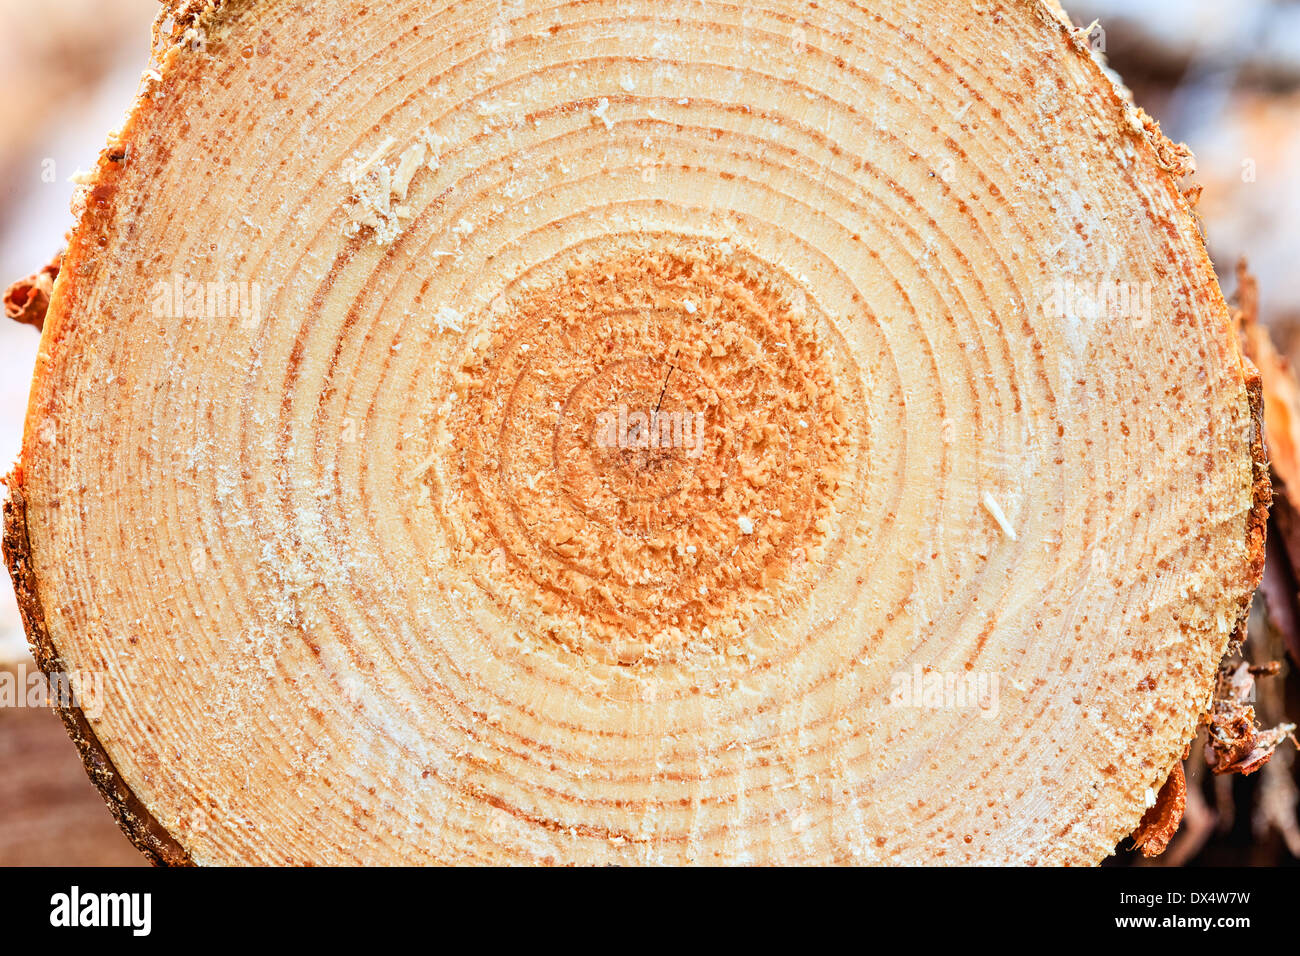 Annual rings on sawn pine tree timber wood texture for Pine tree timber